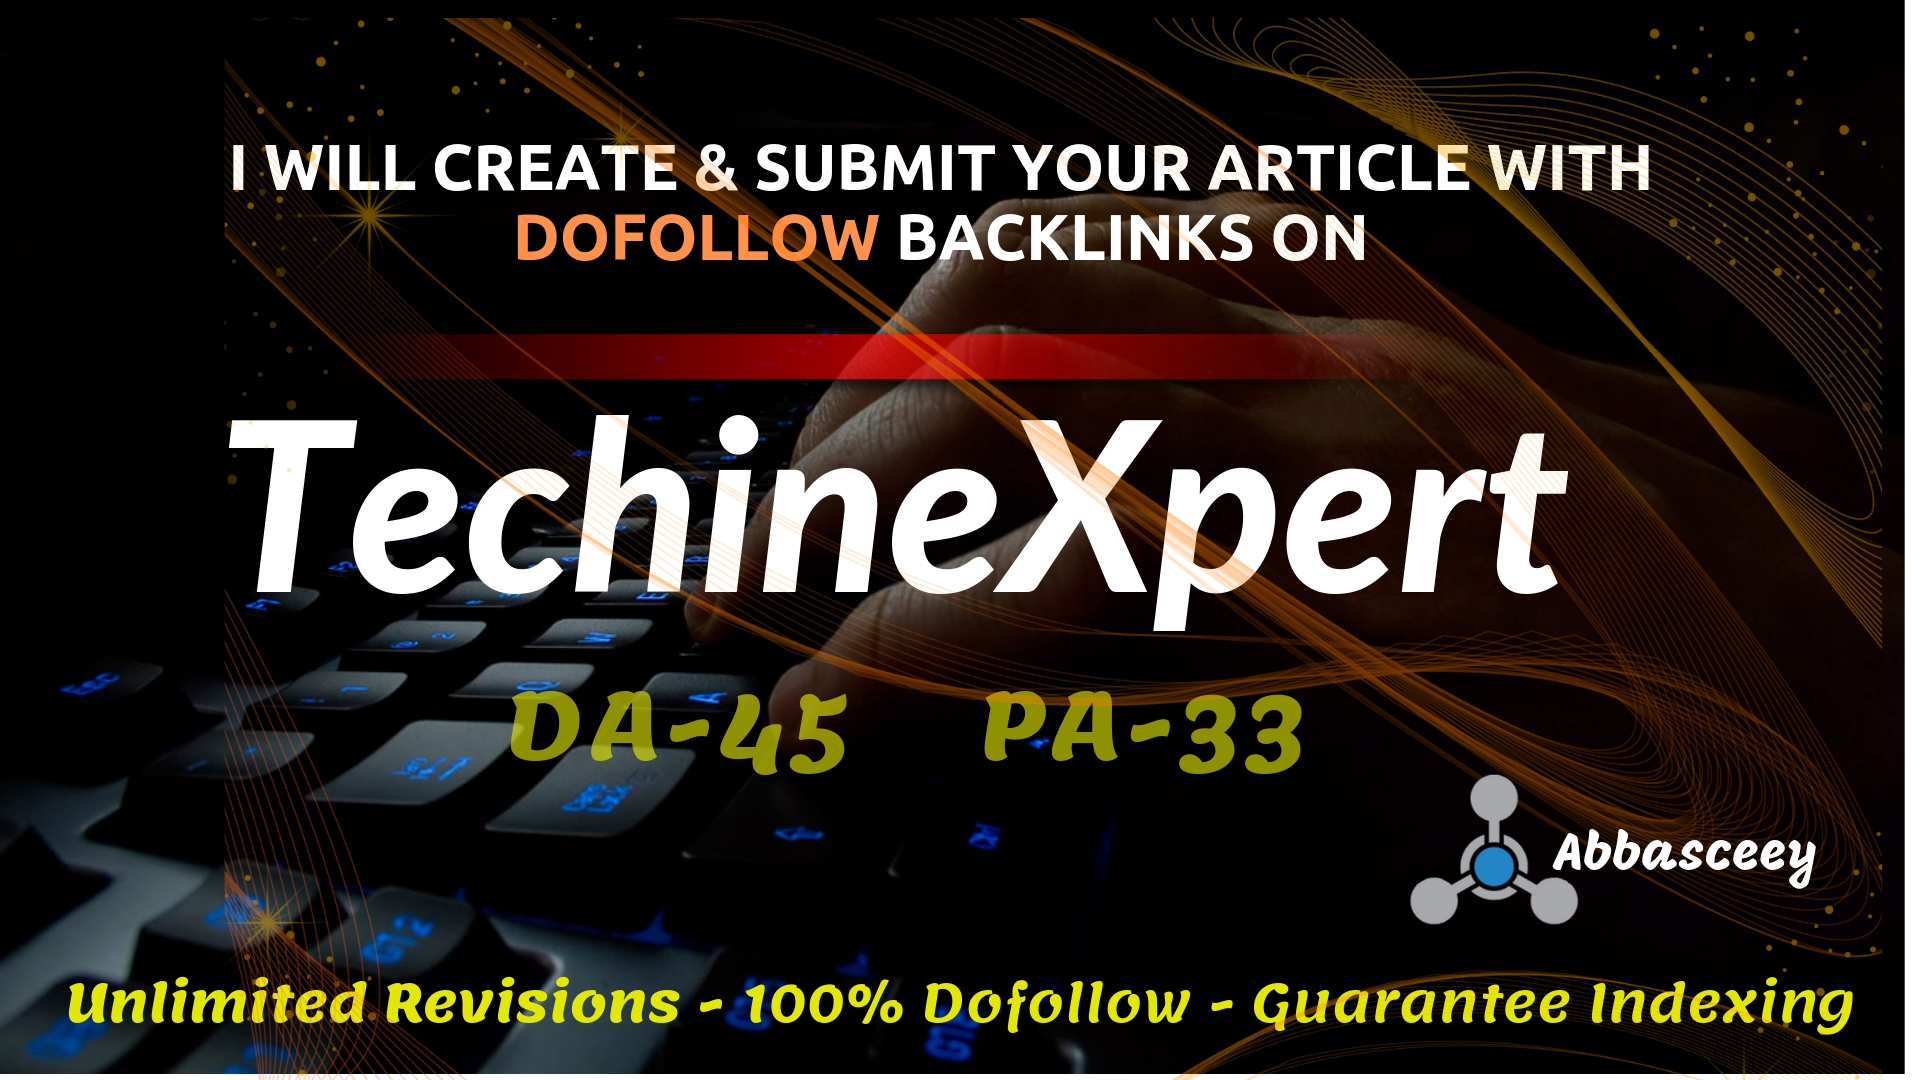 Submit Dofollow Guest Post on Techinexpert Real Tech Site Having DA-45